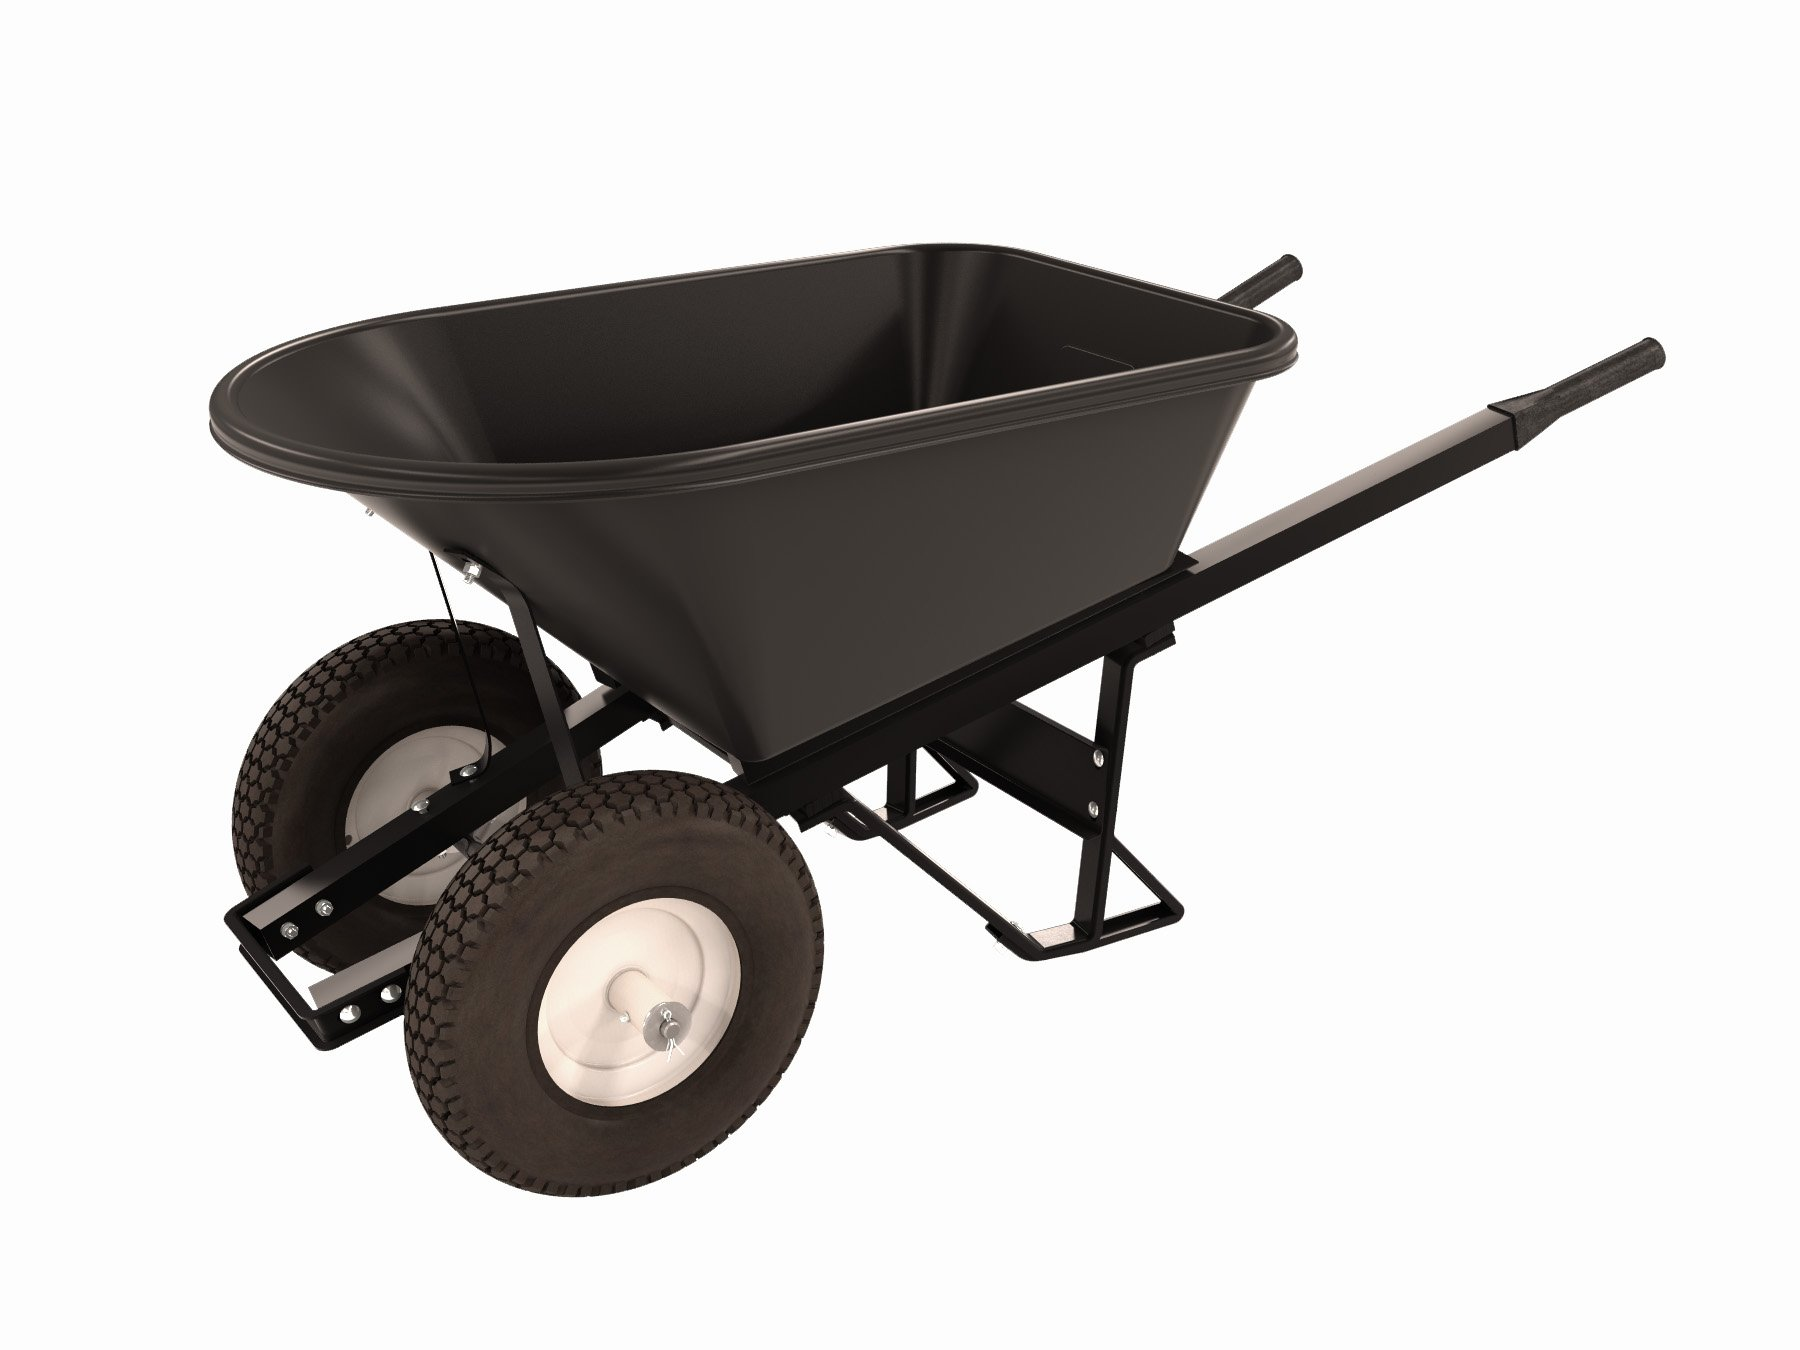 Bon 28 907 Premium Contractor Grade Poly-Tray Double Wheel Wheelbarrow with Steel Hande and Knobby Tire, 5-3/4 Cubic Feet by BON